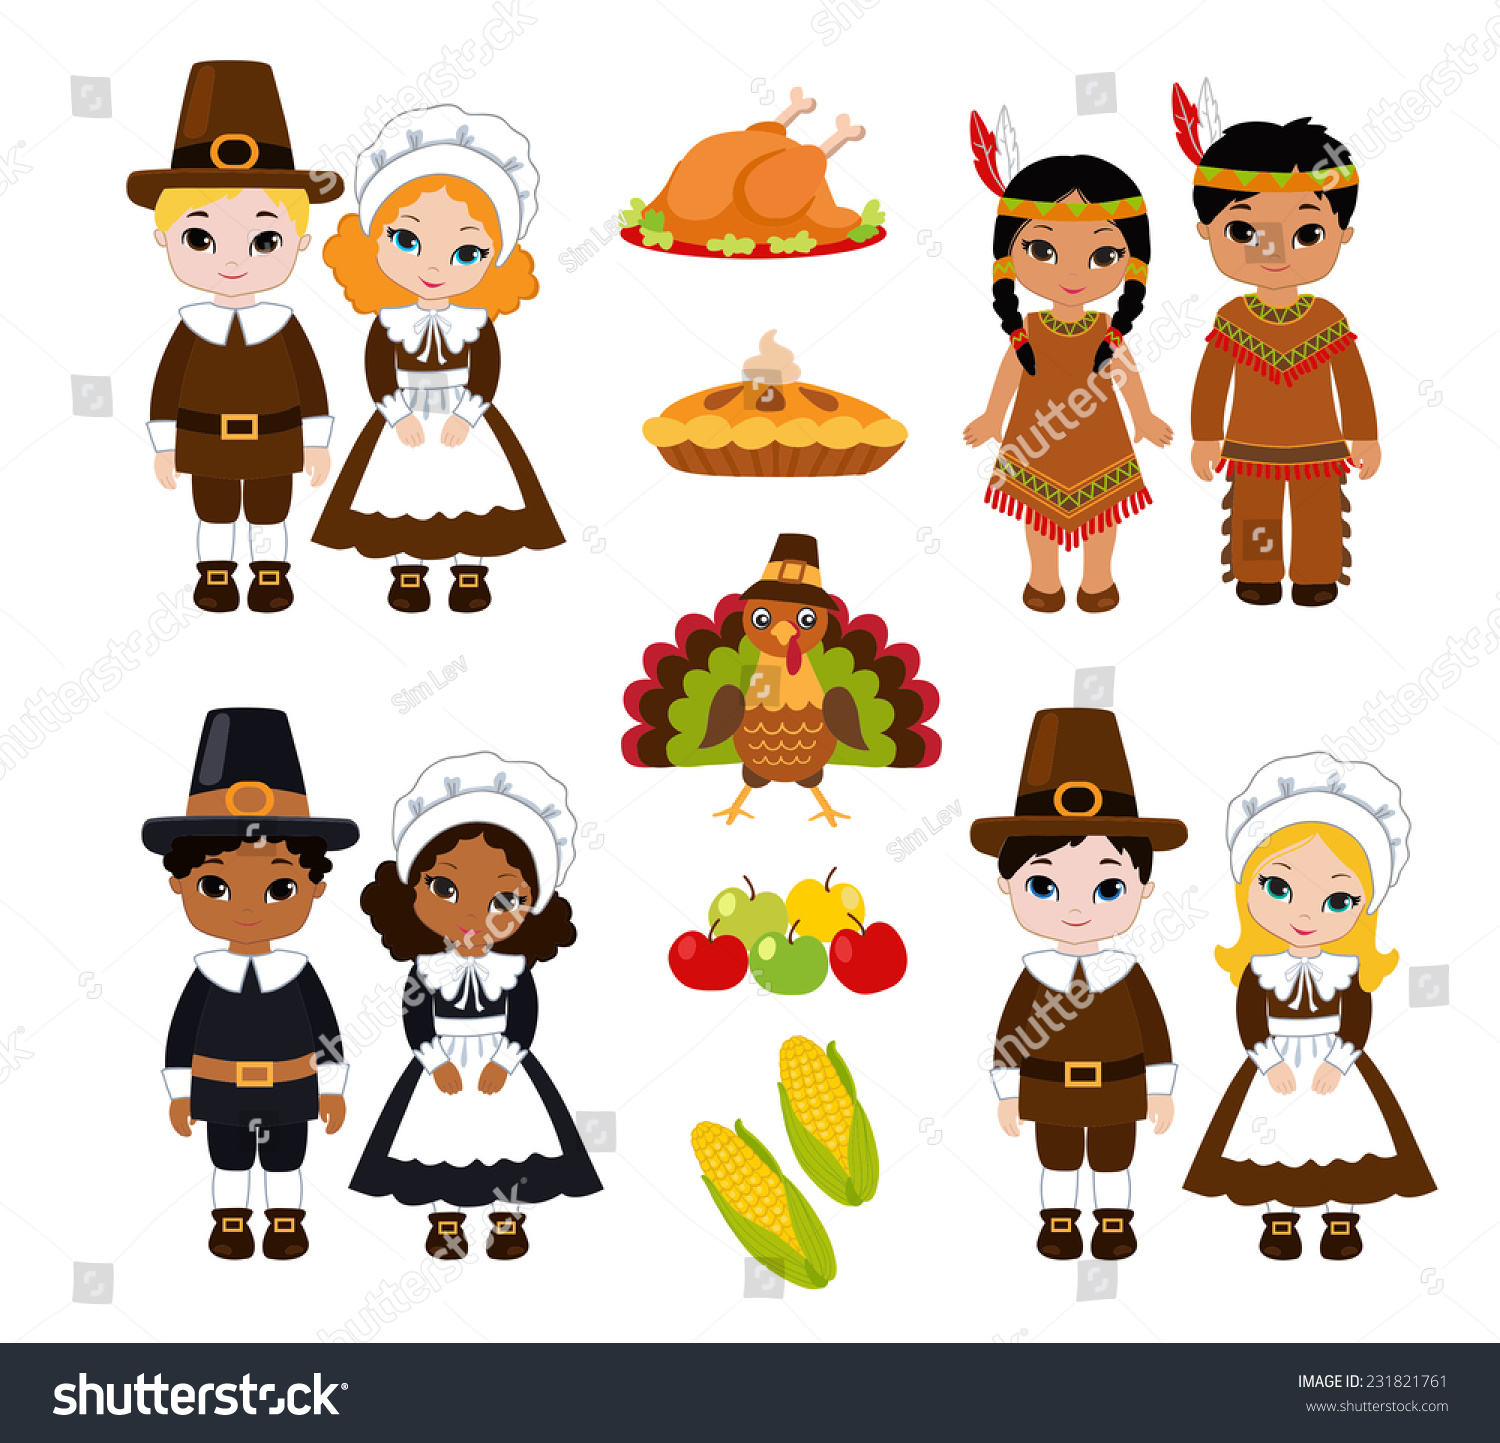 Group Kids Indians Pilgrims Sharing Food Stock Vector ...